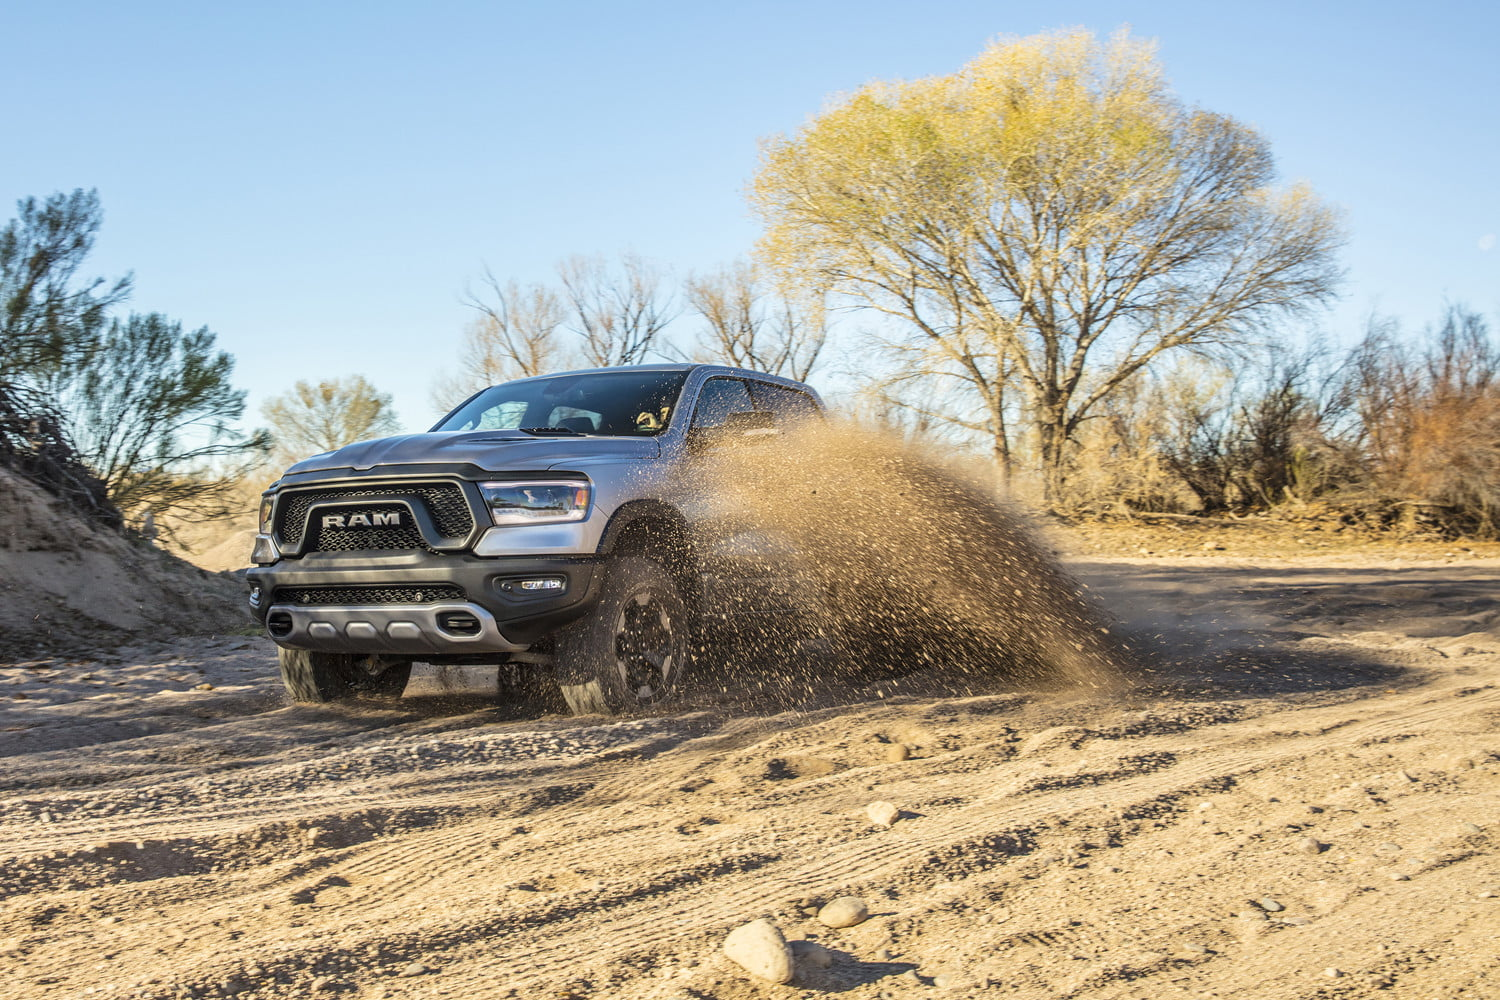 The Best Off Road Vehicles For 2019